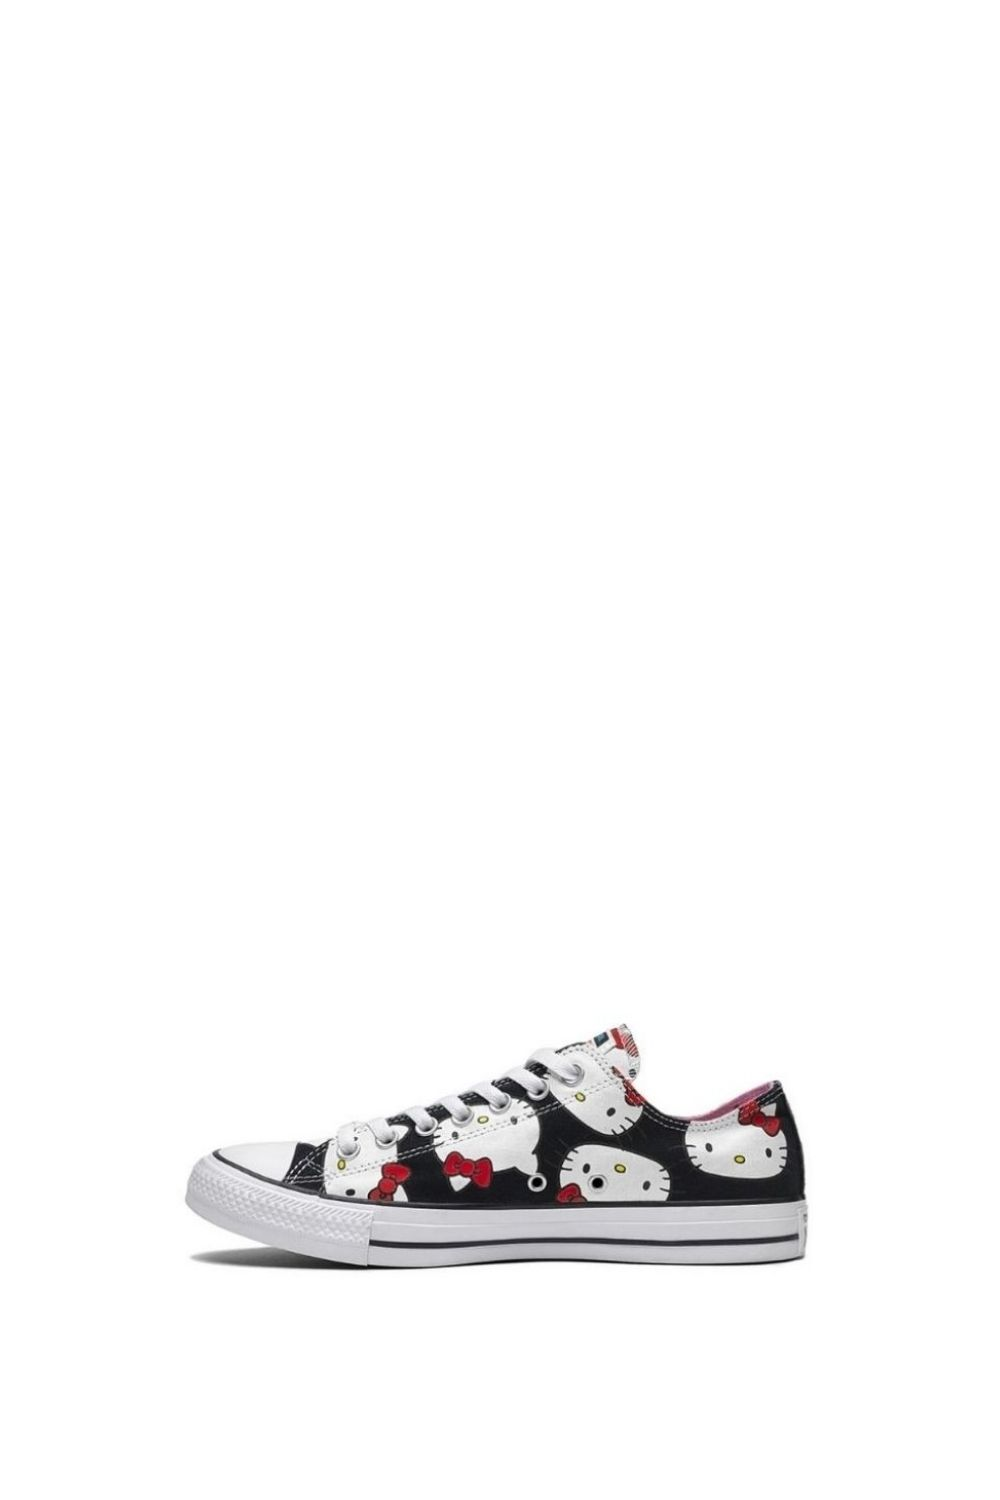 CONVERSE – Παιδικά sneakers Converse x Hello Kitty Chuck Taylor All Star μαύρα